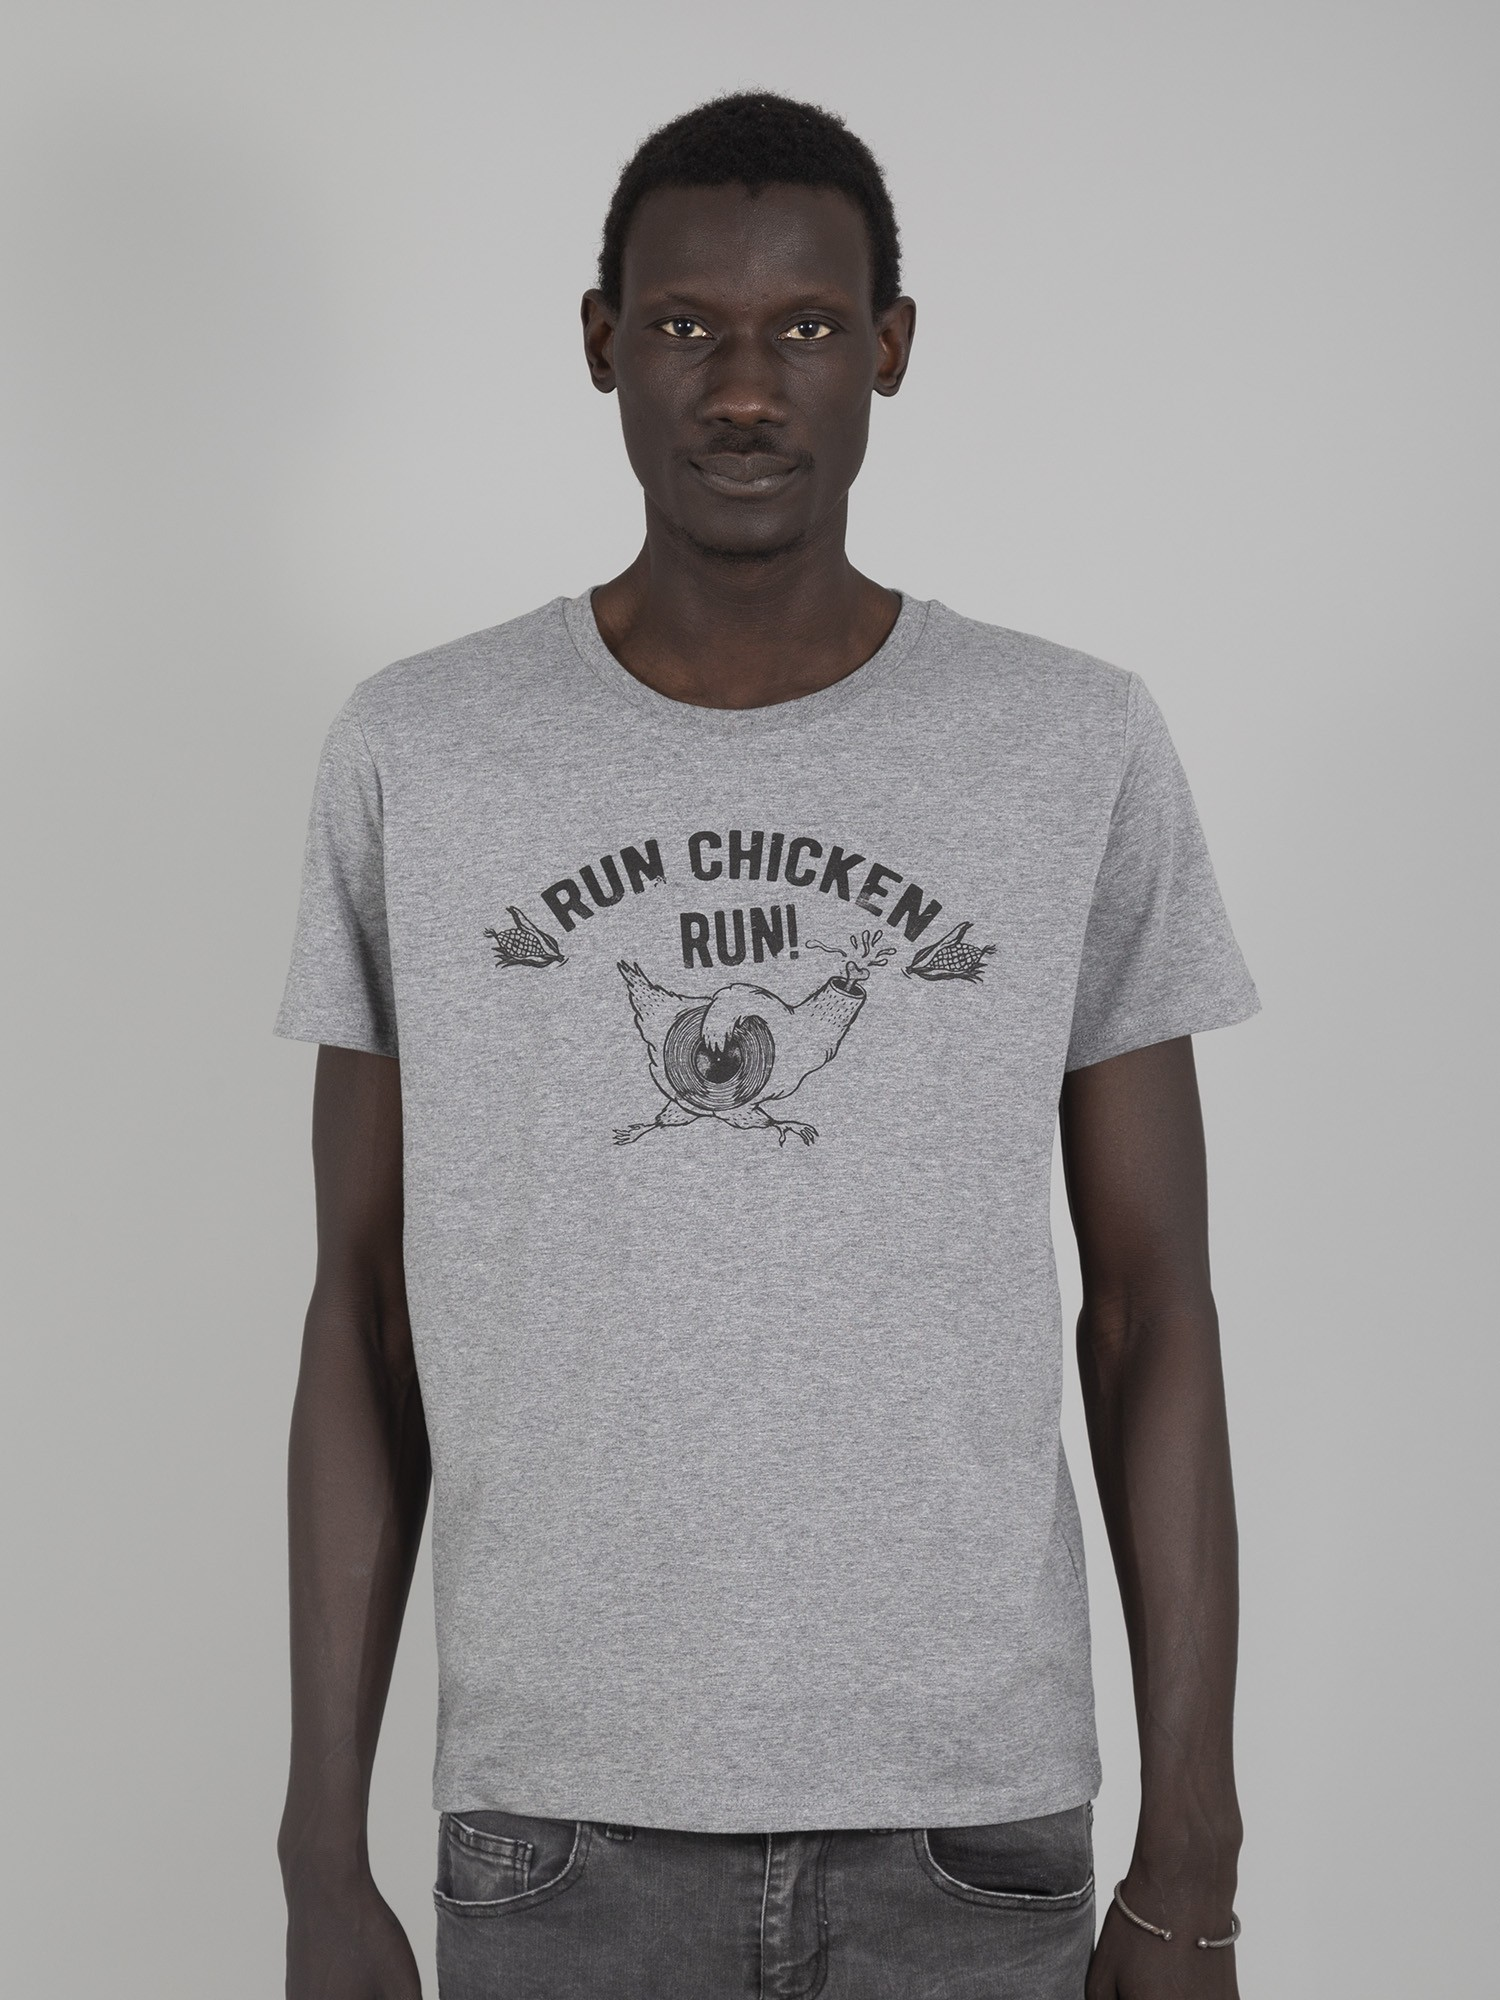 Camiseta Capitán Run Chicken Grey